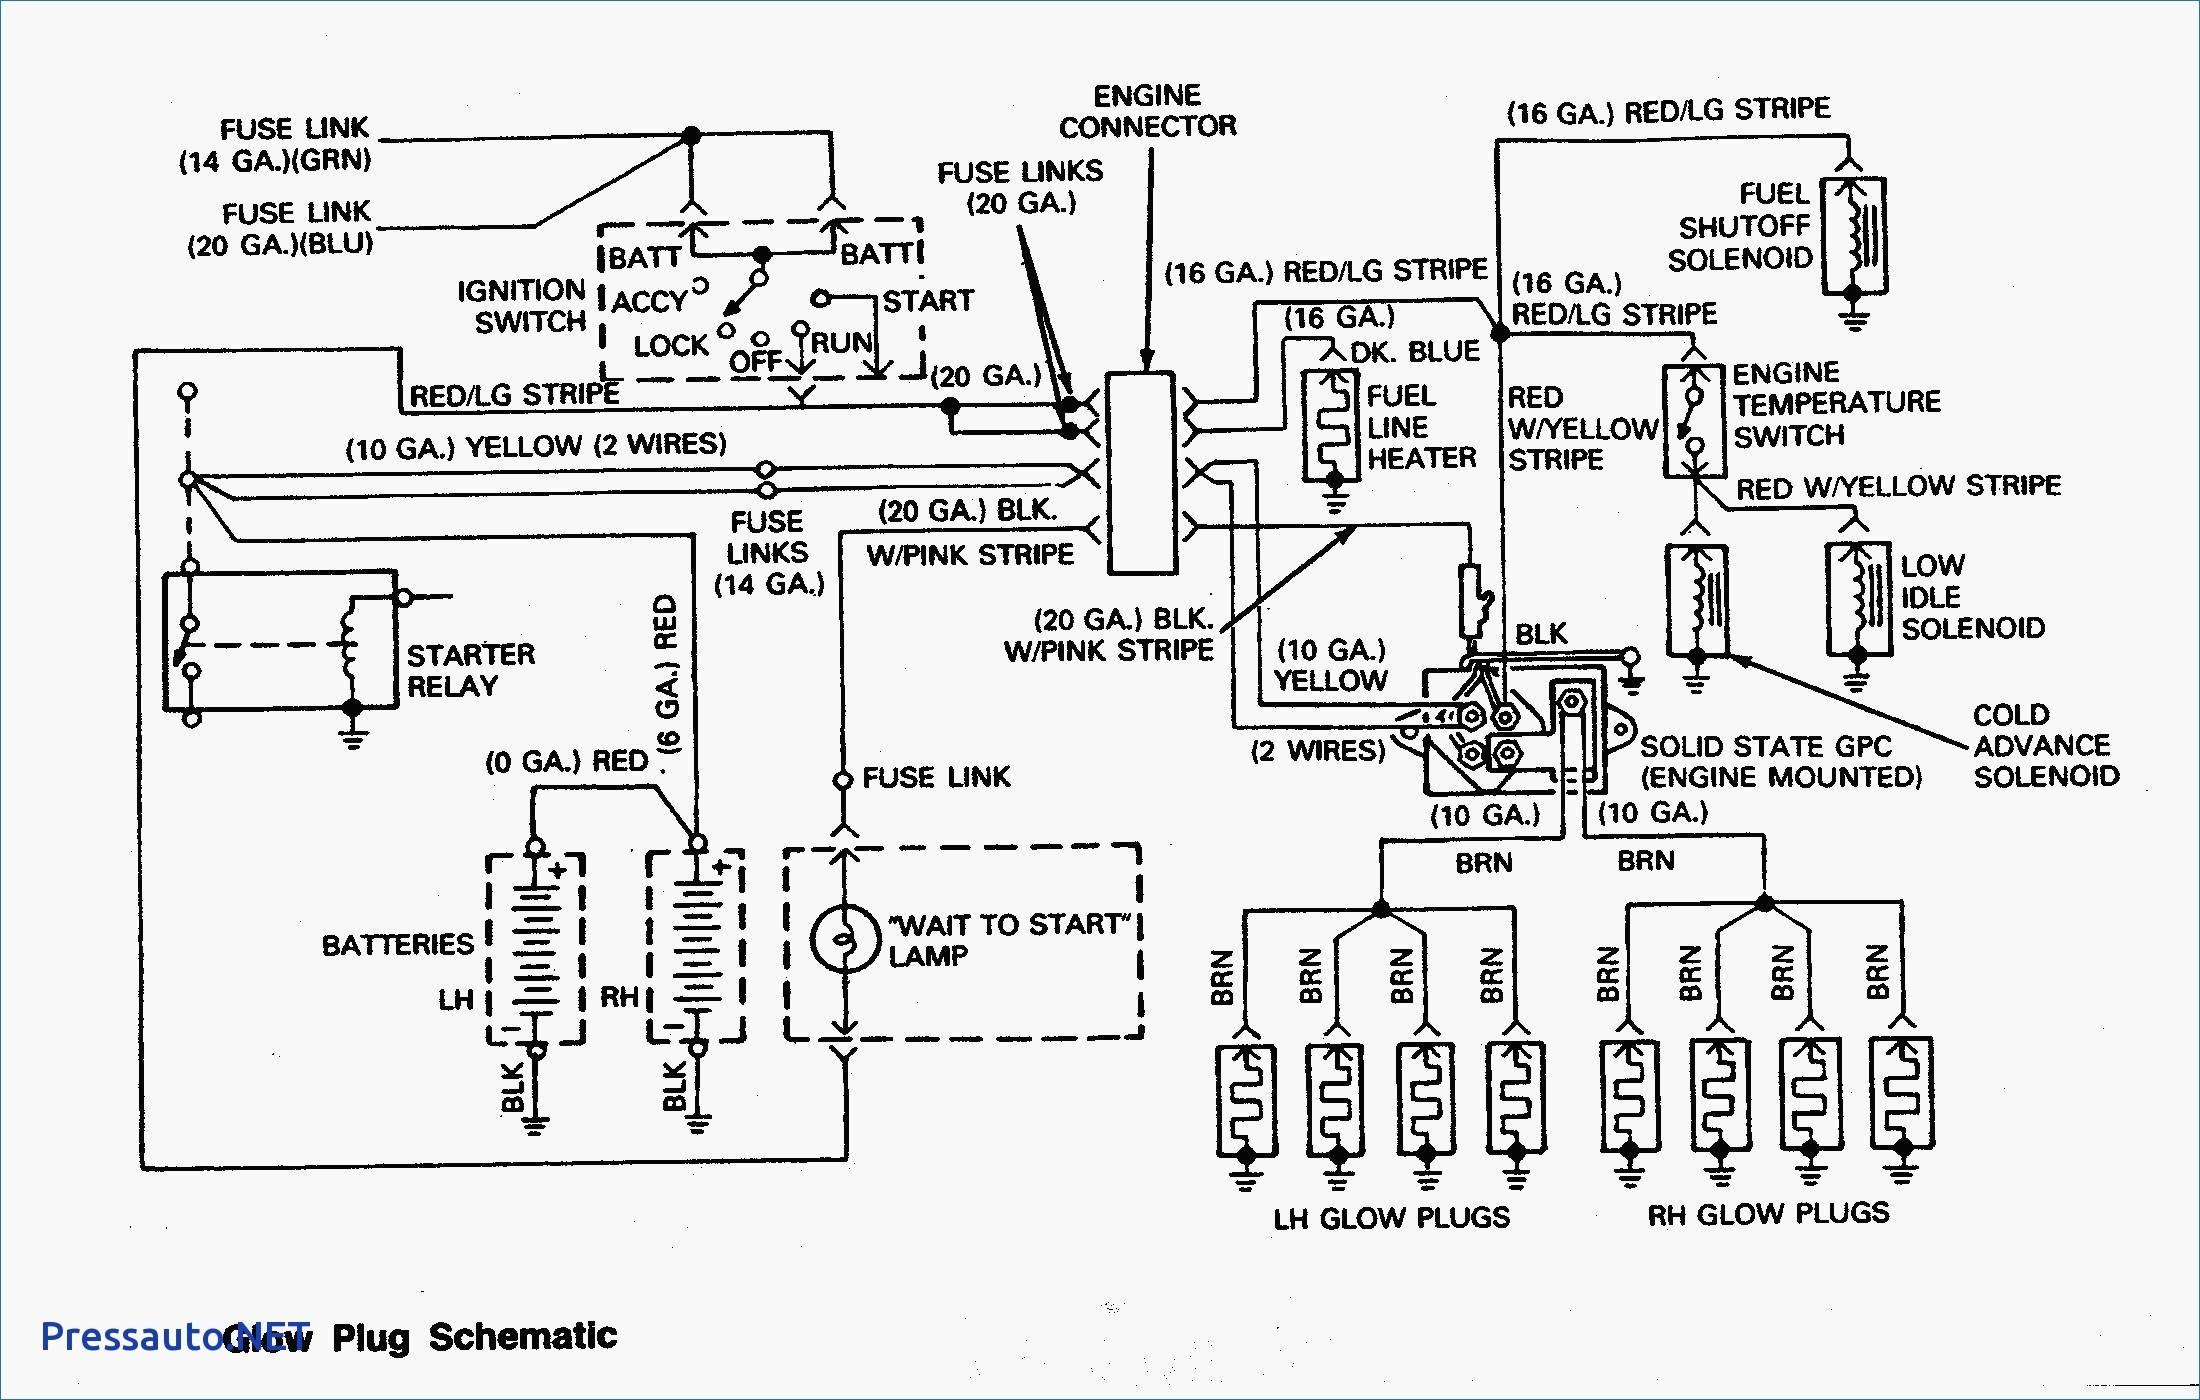 Schematic For Engine Diy Enthusiasts Wiring Diagrams Engineering Schematics Lamp Diagram Of Diesel My Rh Detoxicrecenze Com Drawing Engineer